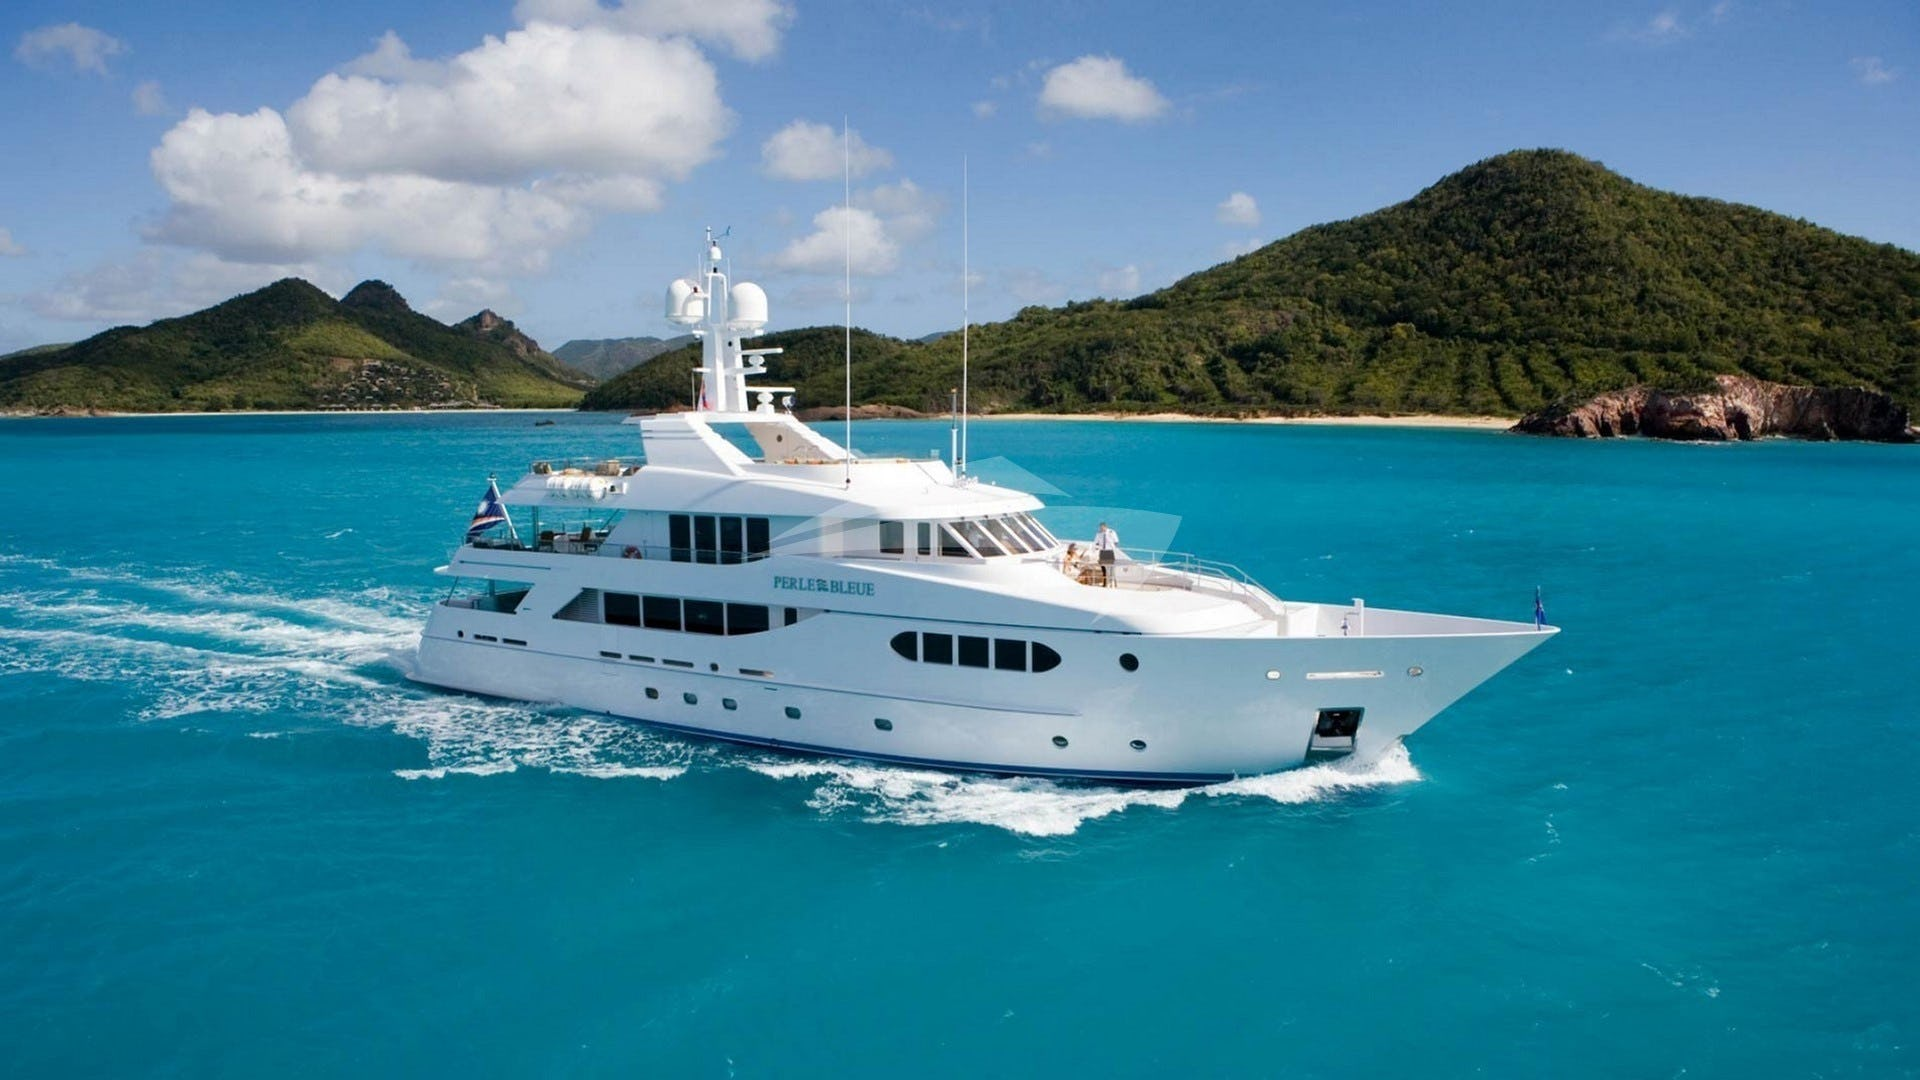 Yacht PERLE BLEUE Charter Yacht